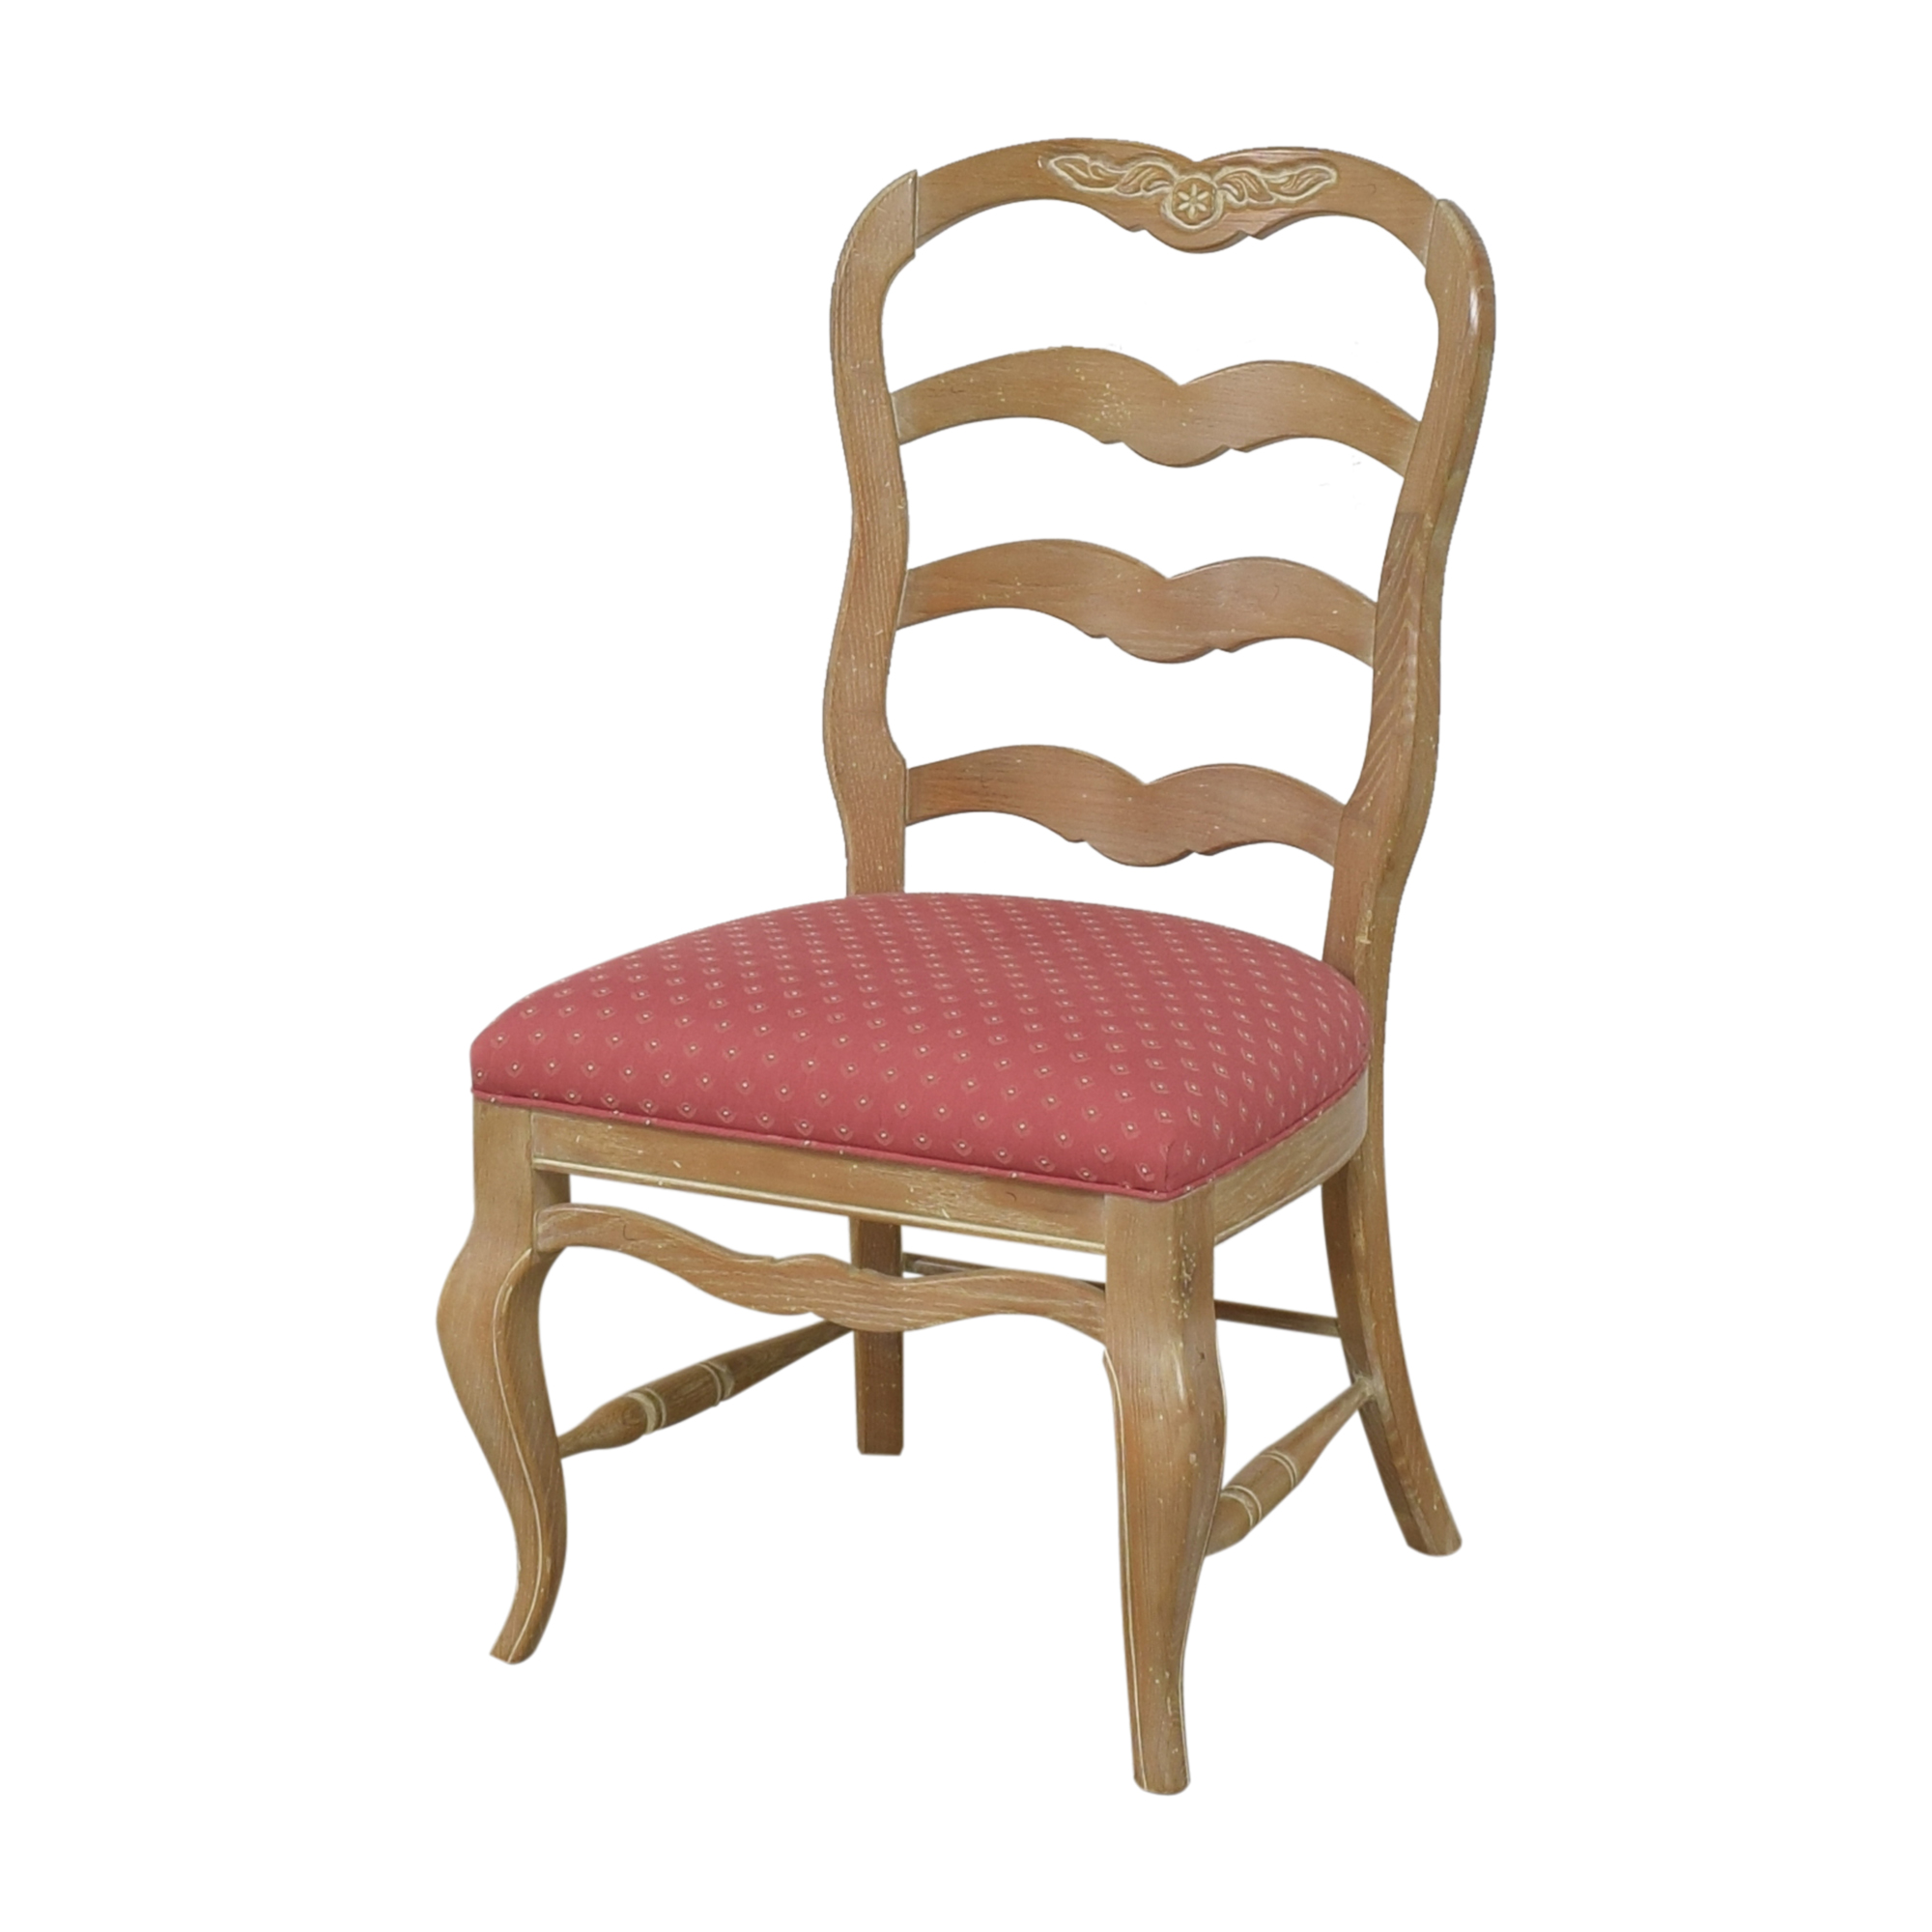 buy Pennsylvania House Country French Ladder Back Dining Chairs Pennsylvania House Chairs